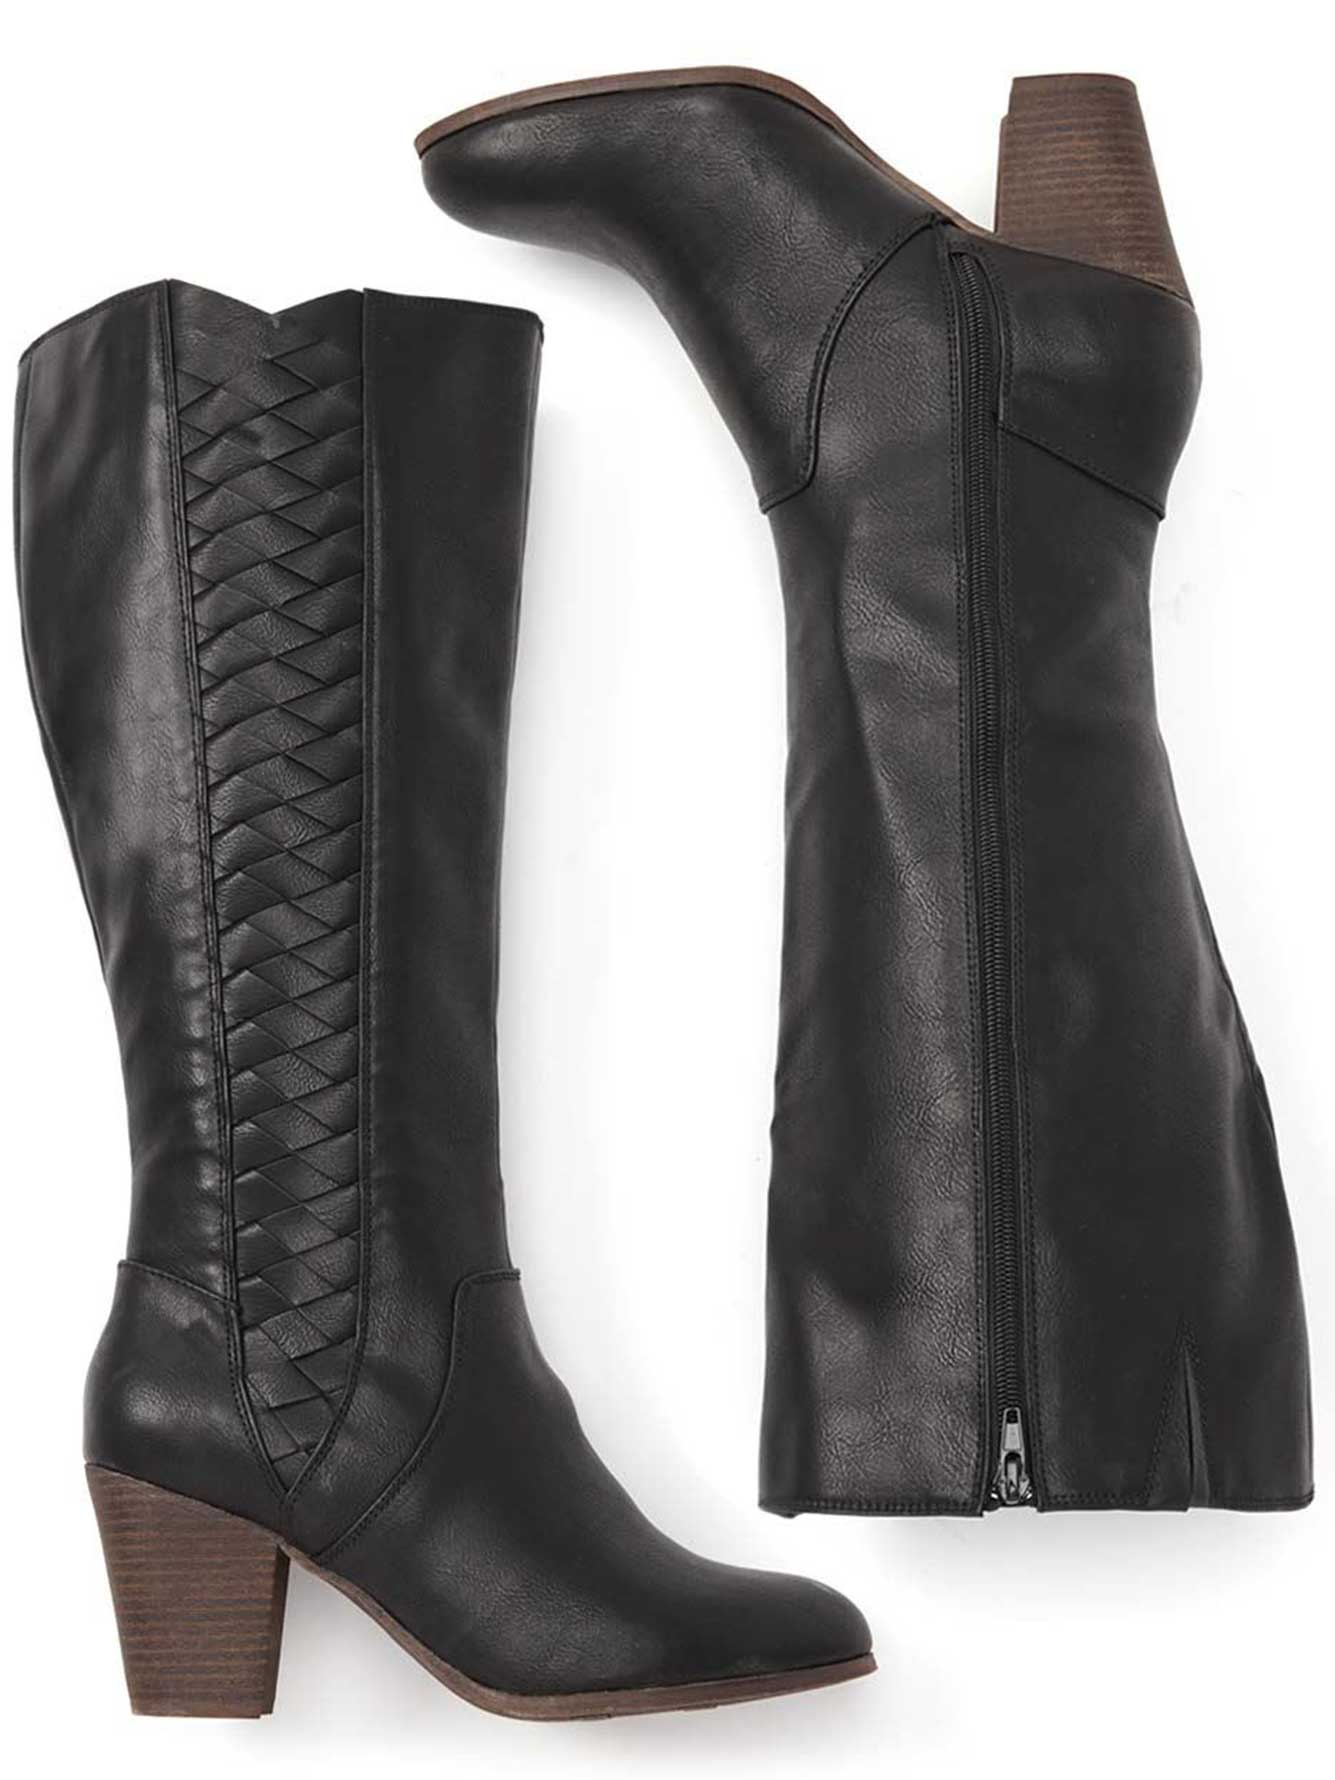 Fergalicious Cally Braided Boot